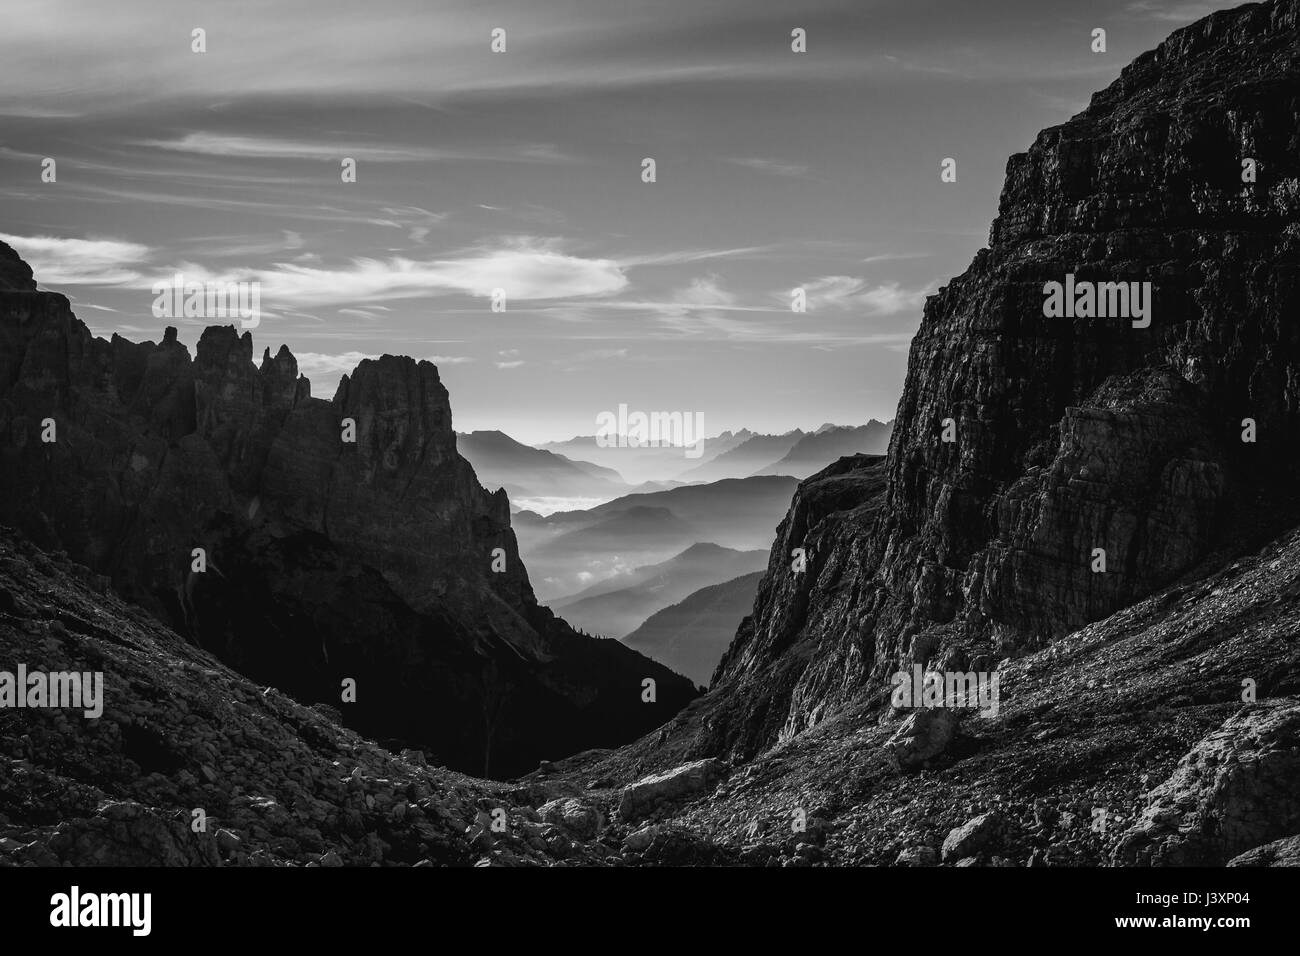 Black and white landscape view of hazy rolling mountains and hills in the Italian Dolomites at sunrise. Landscape - Stock Image